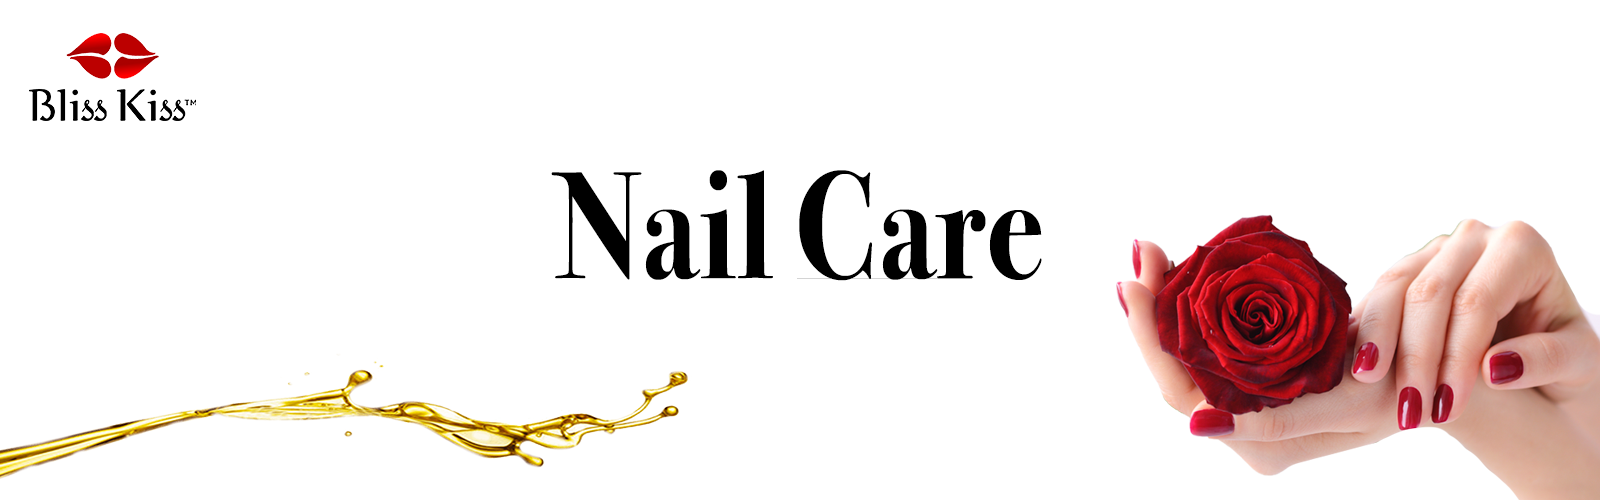 nail-care-banner.png